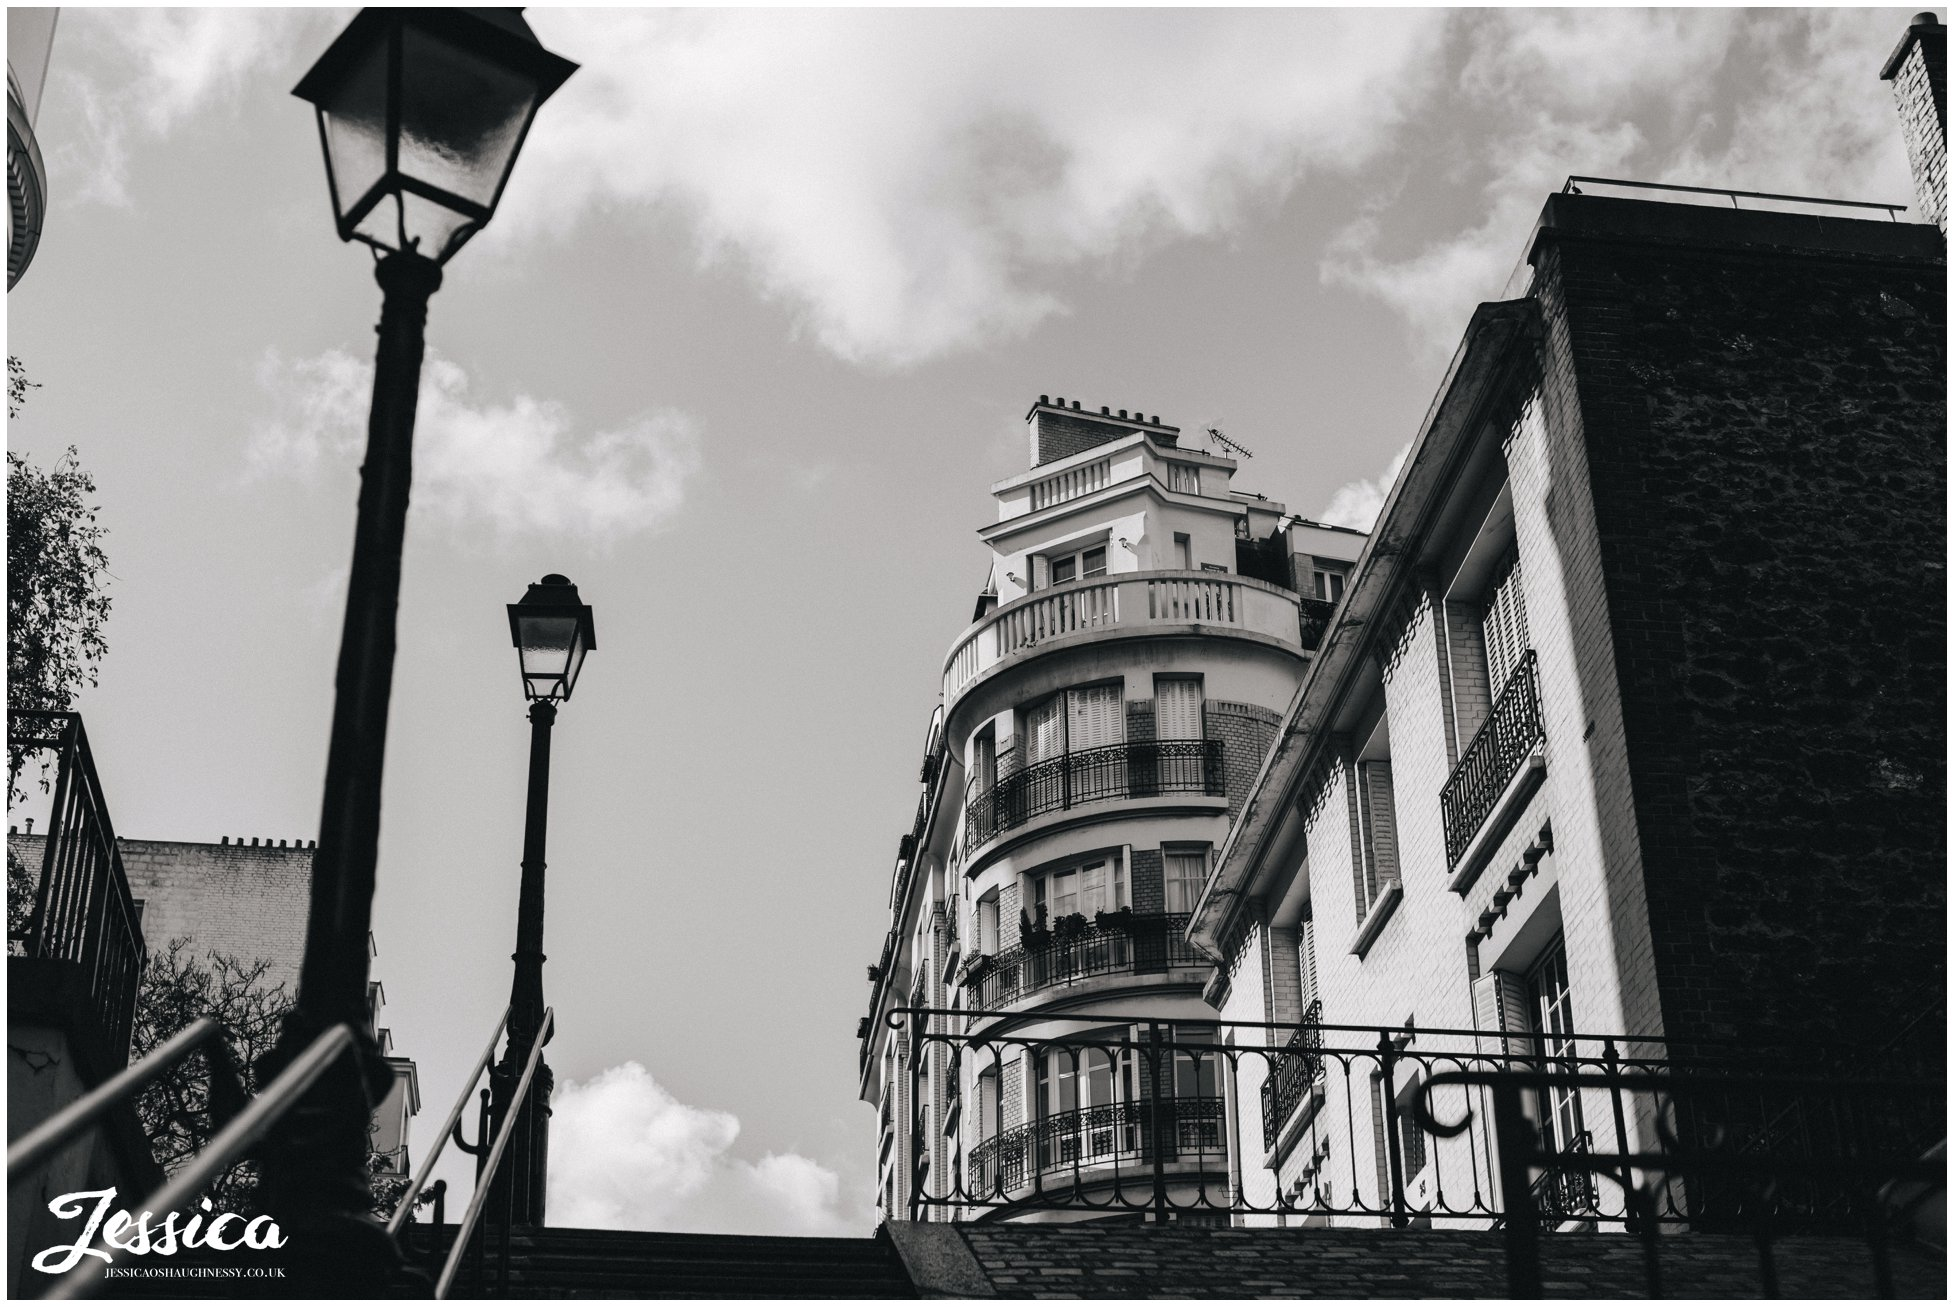 black and white photograph of parisian buildings